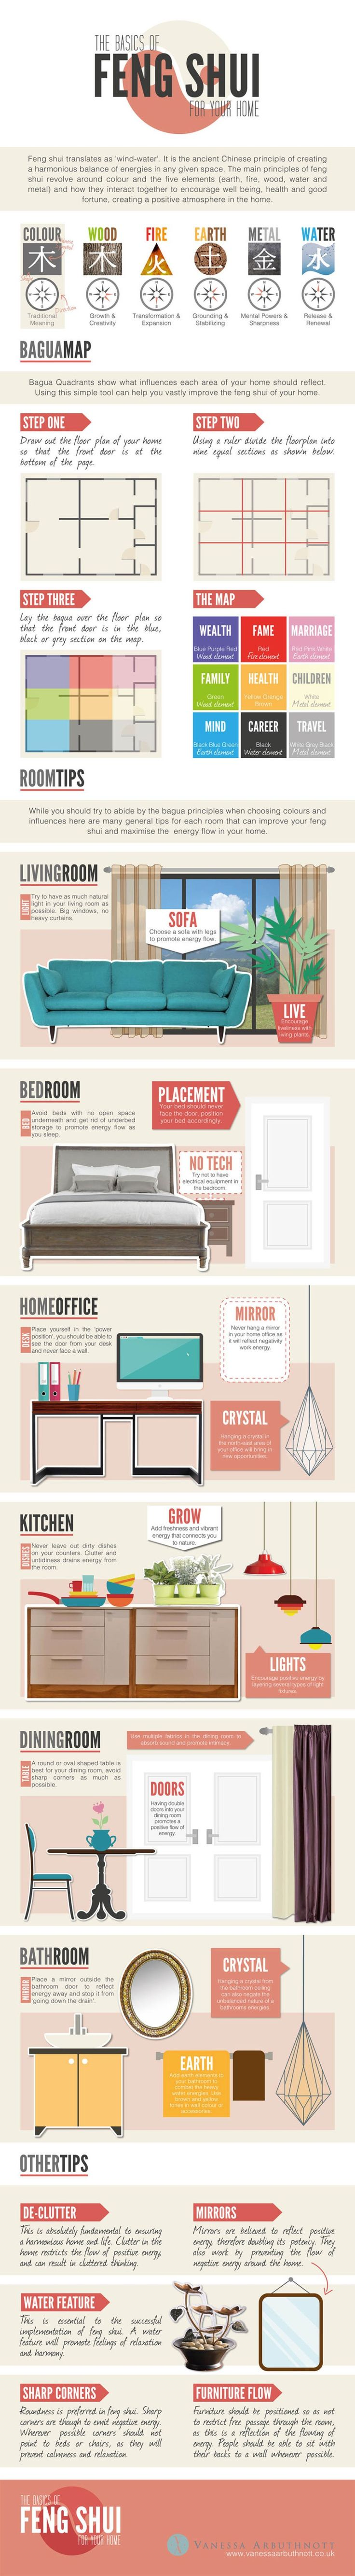 Bedroom Furniture Arrangement Feng Shui best 25+ bedroom furniture placement ideas on pinterest